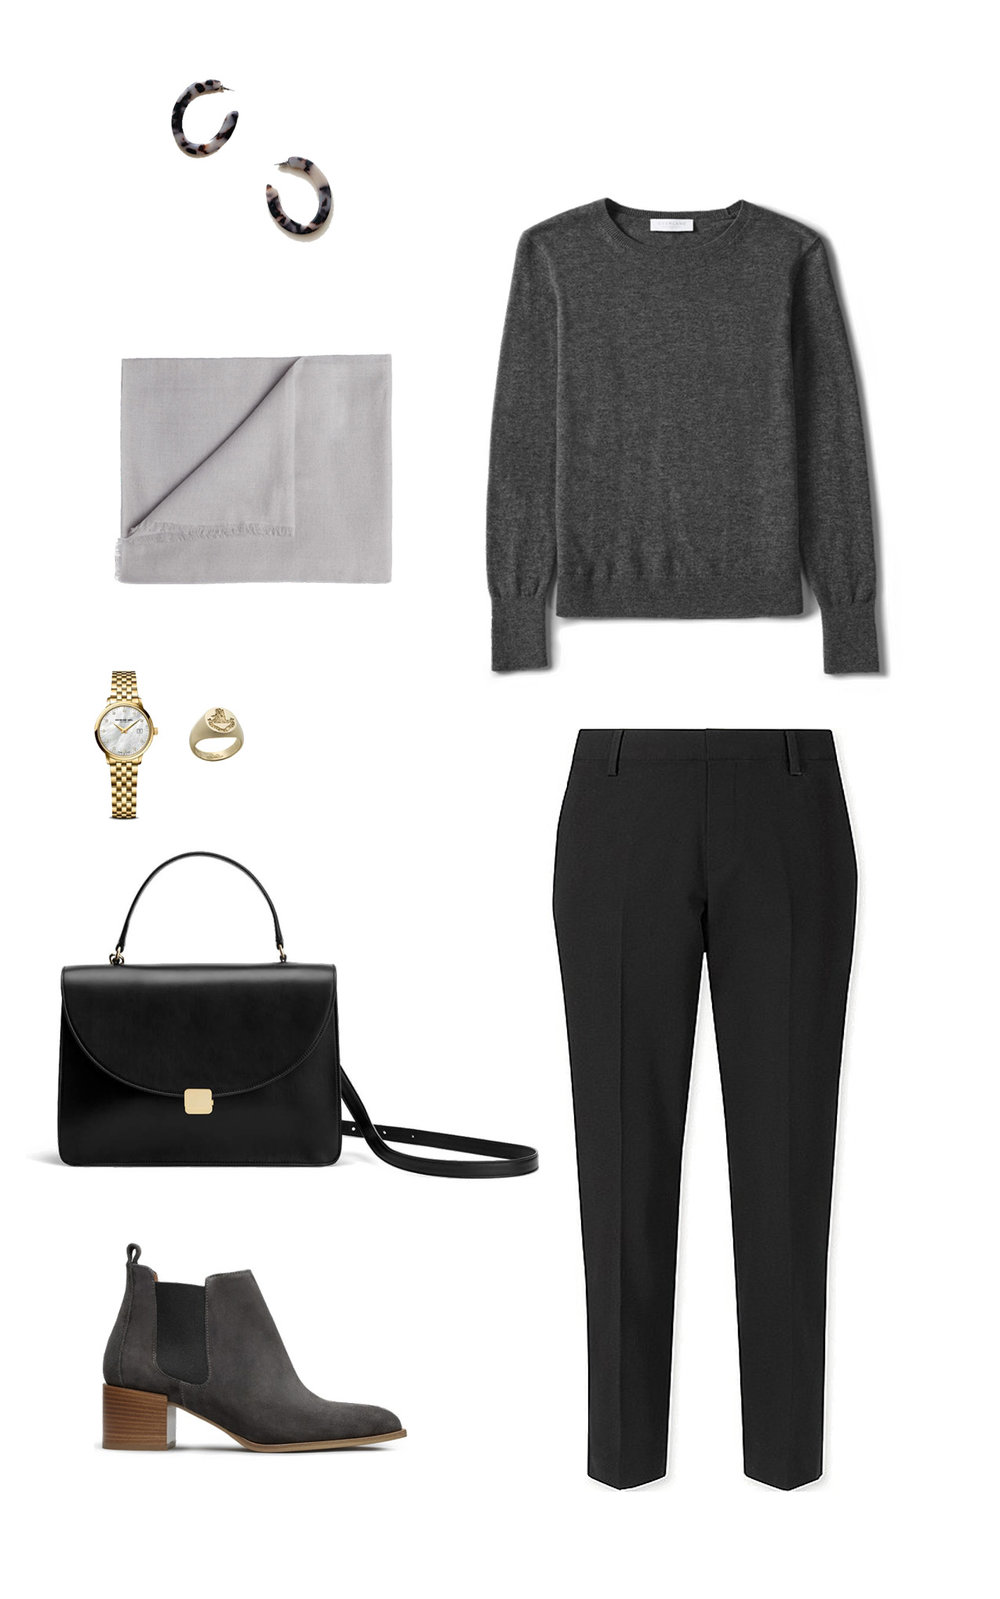 tortoise-shell-earrings-machete-earrings-everlane-cashmere-suede-ankle-boots-cuyana-purse-ruffs-signet-ring.jpg